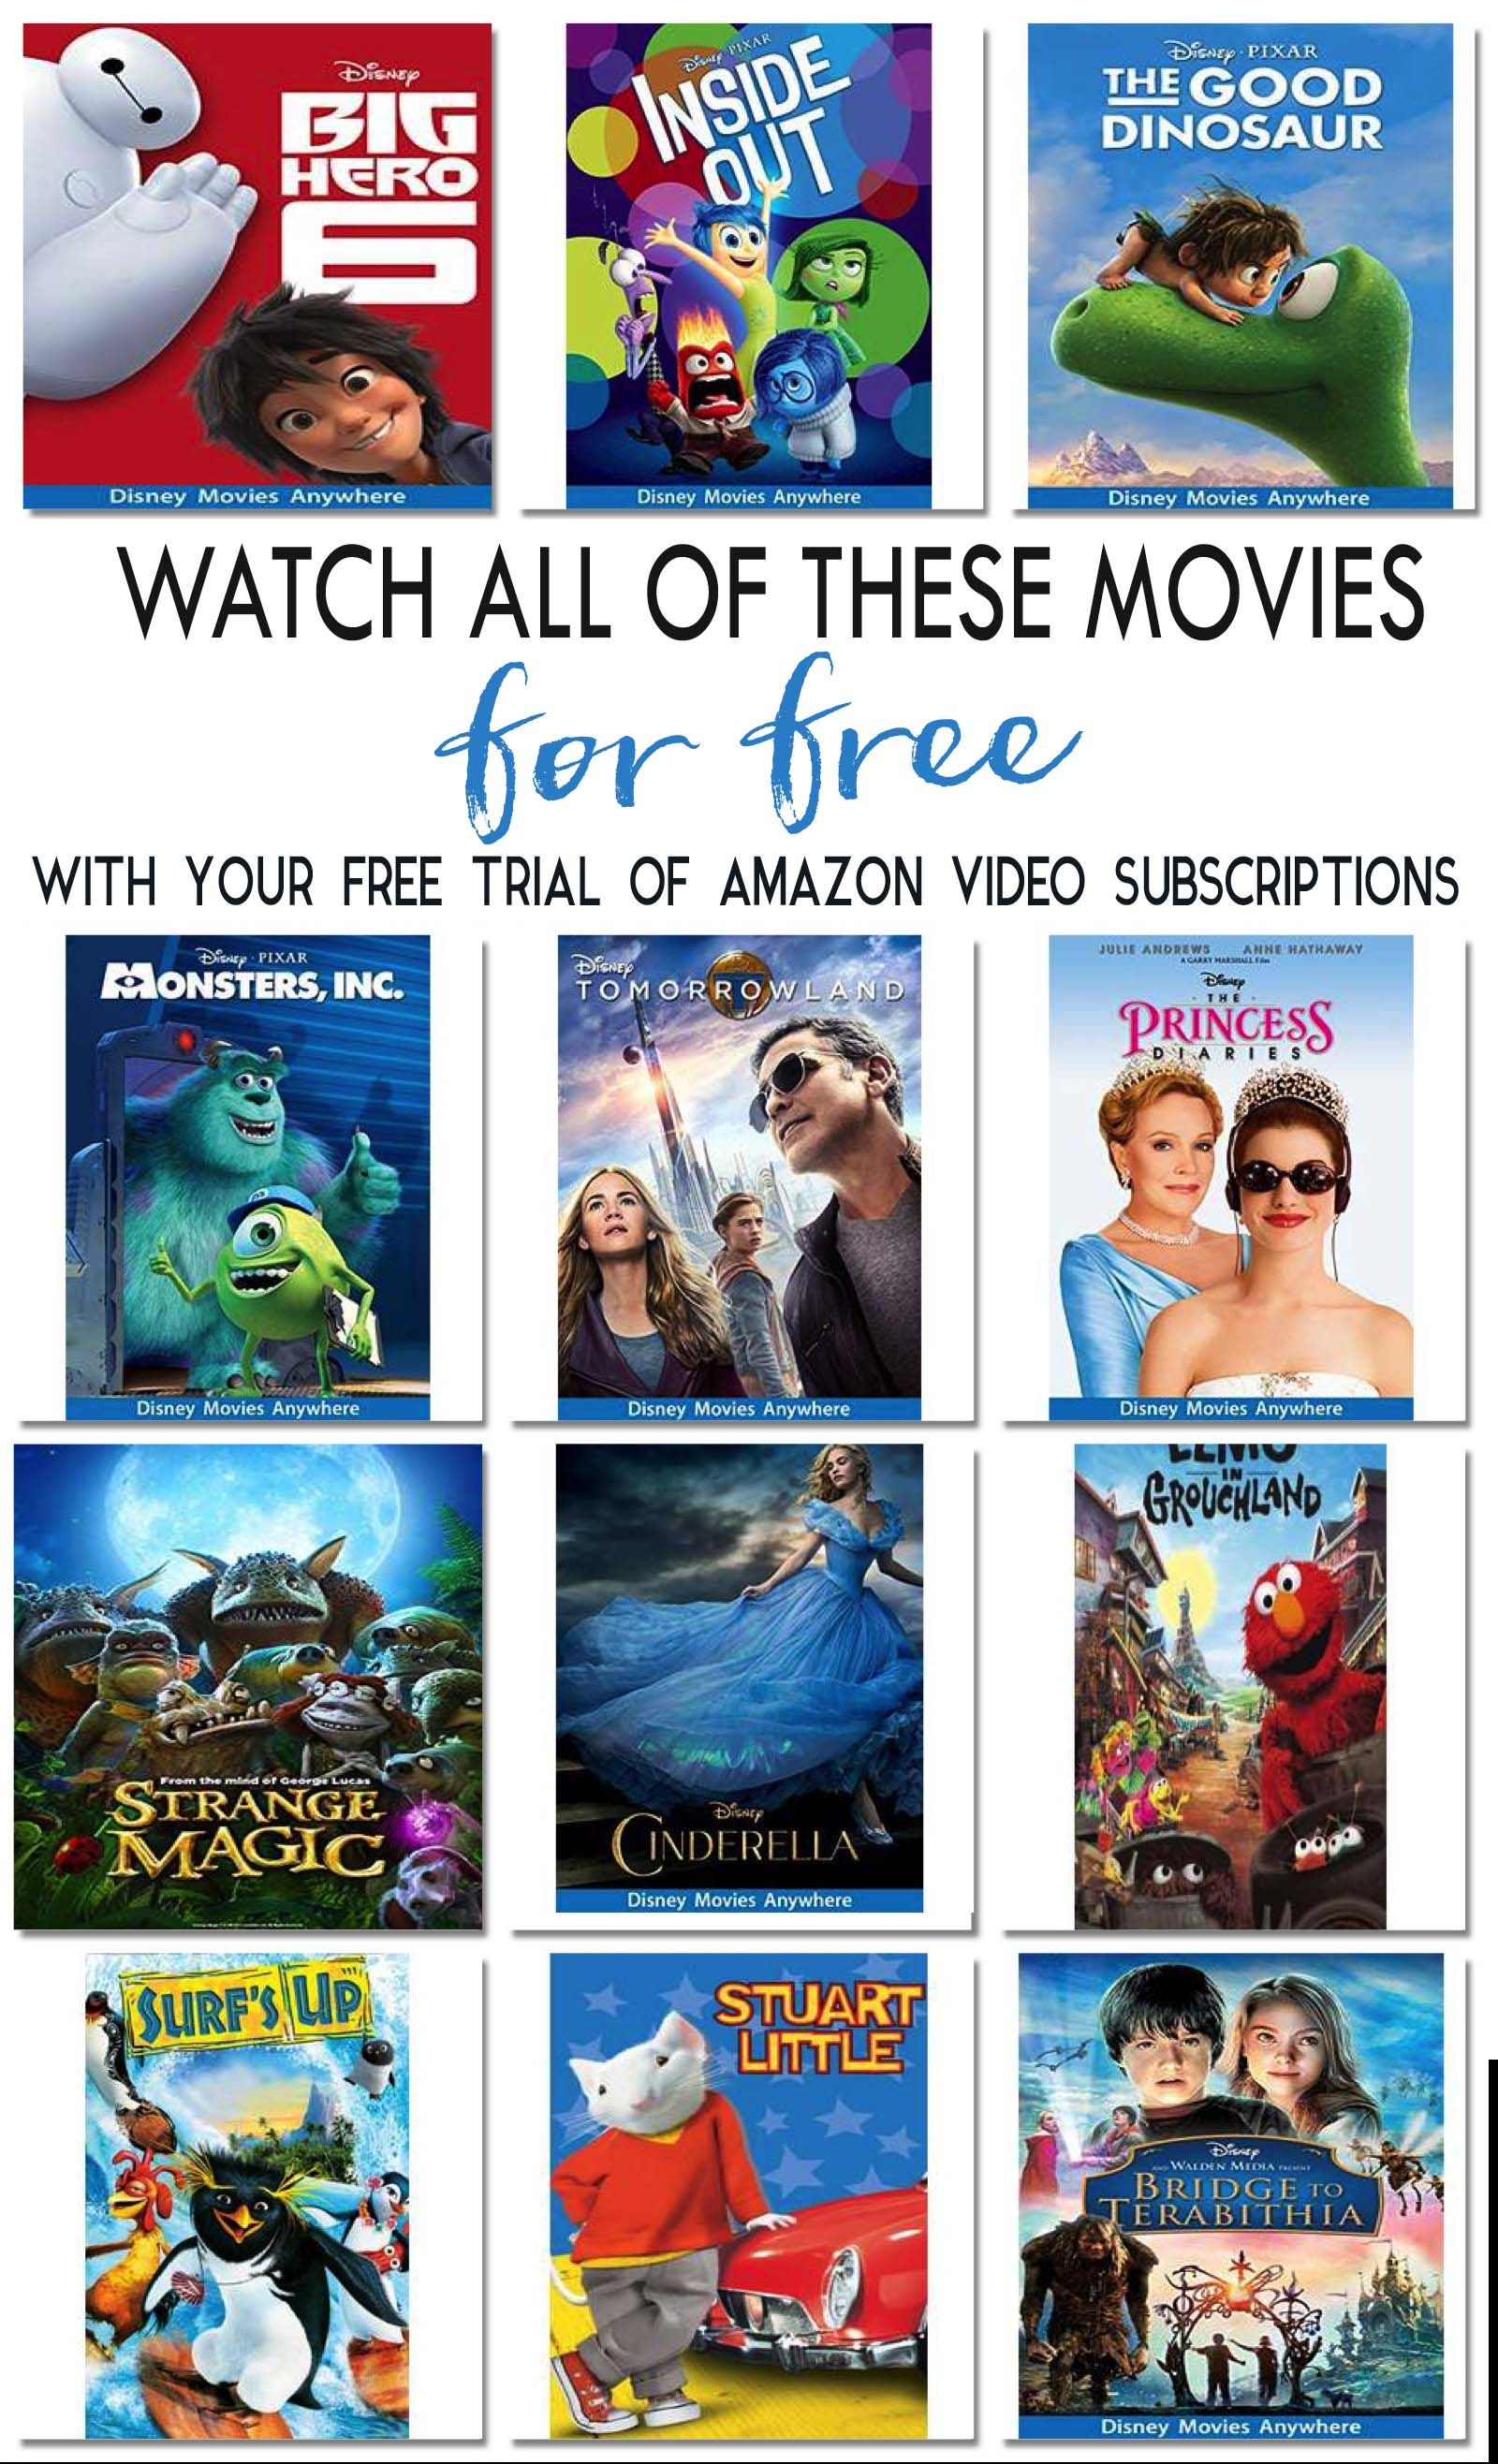 Free Movies Free Kids Movies And Family Friendly Favorites Watch All These Movies For Free With Your Fre Free Kids Movies Disney Movies Anywhere Kids Movies